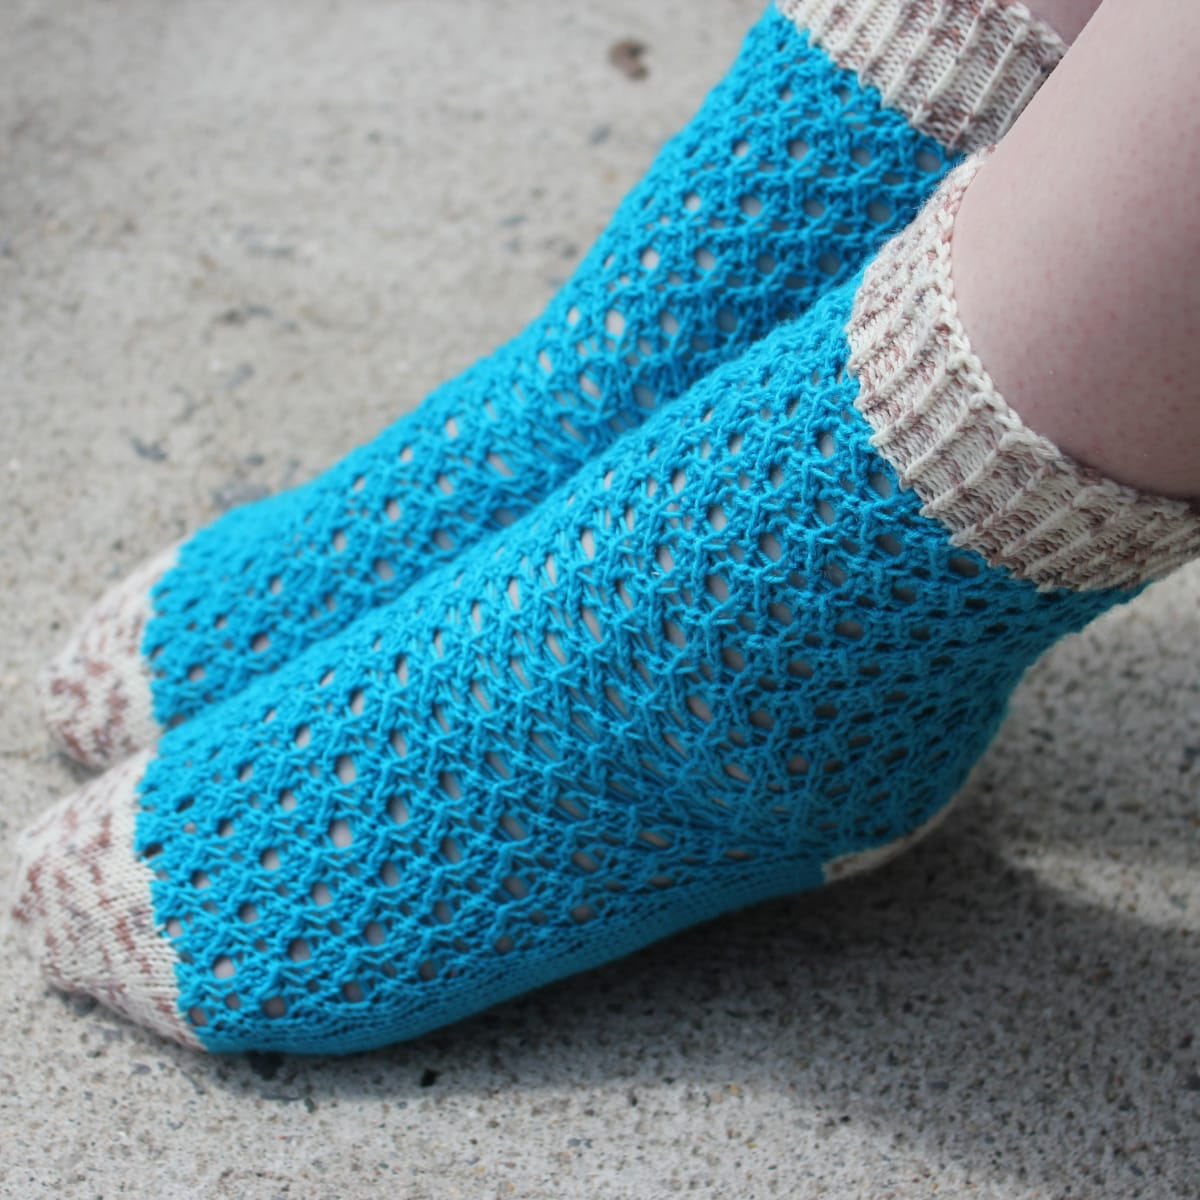 Top view of feet with pointed toes wearing bright blue lace socks with white and brown speckled heels, toes, and cuffs.